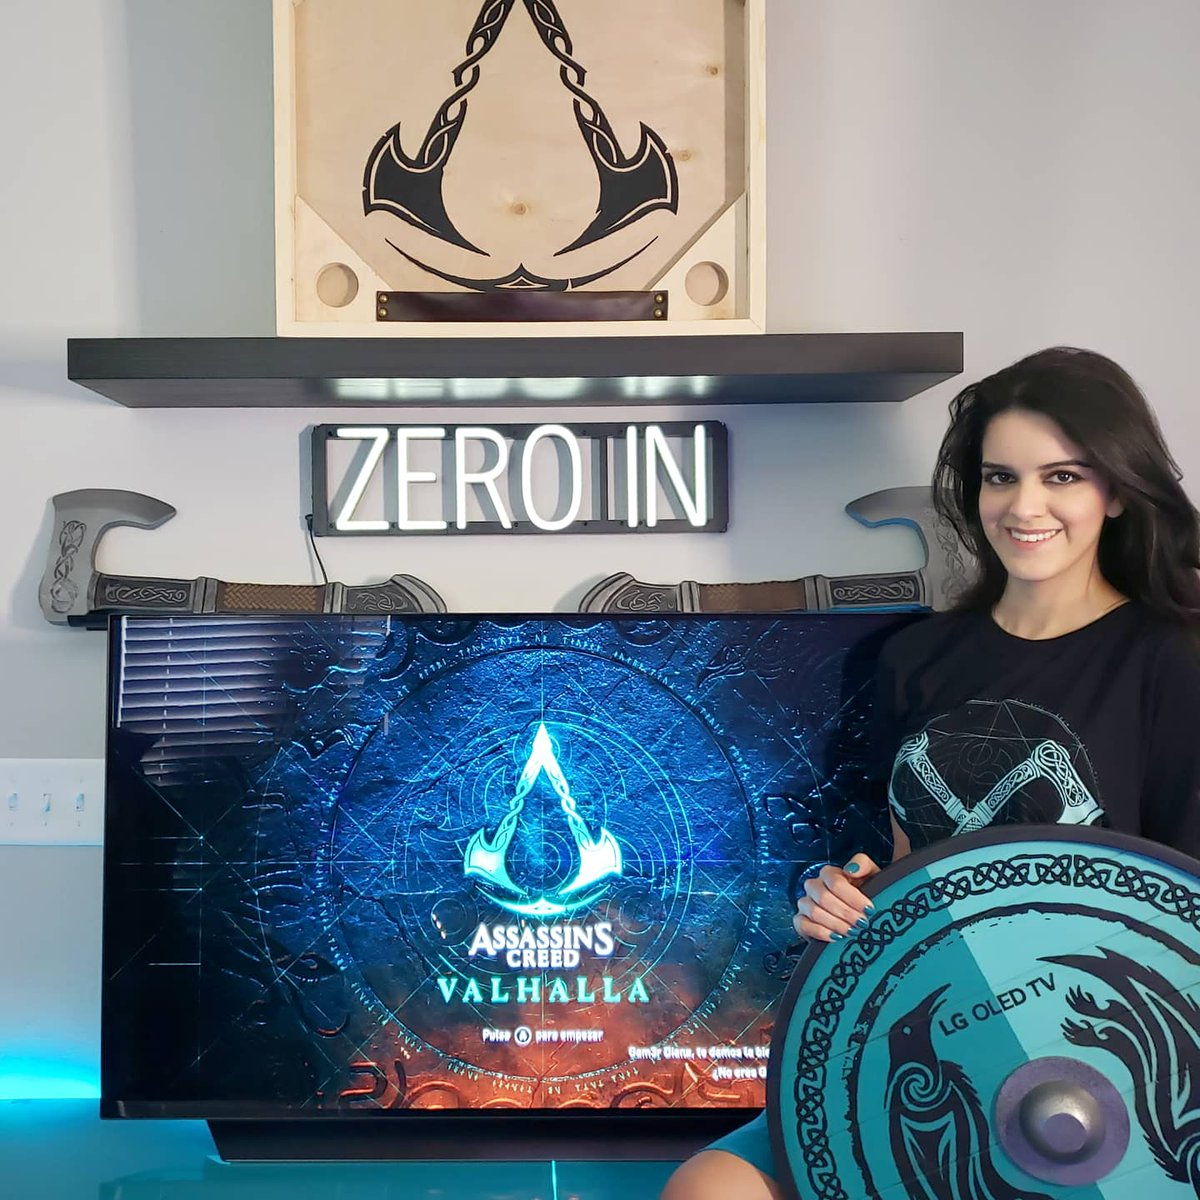 """Love my 48"""" @lgus OLED TV  the feeling when playing @AssassinsCreed Valhalla is unique, because the immersive quality of the images that make you feel like a real Viking. Check out the #LgZeroIn series:  #LGOLEDTV #lgpartner #assassinscreed"""